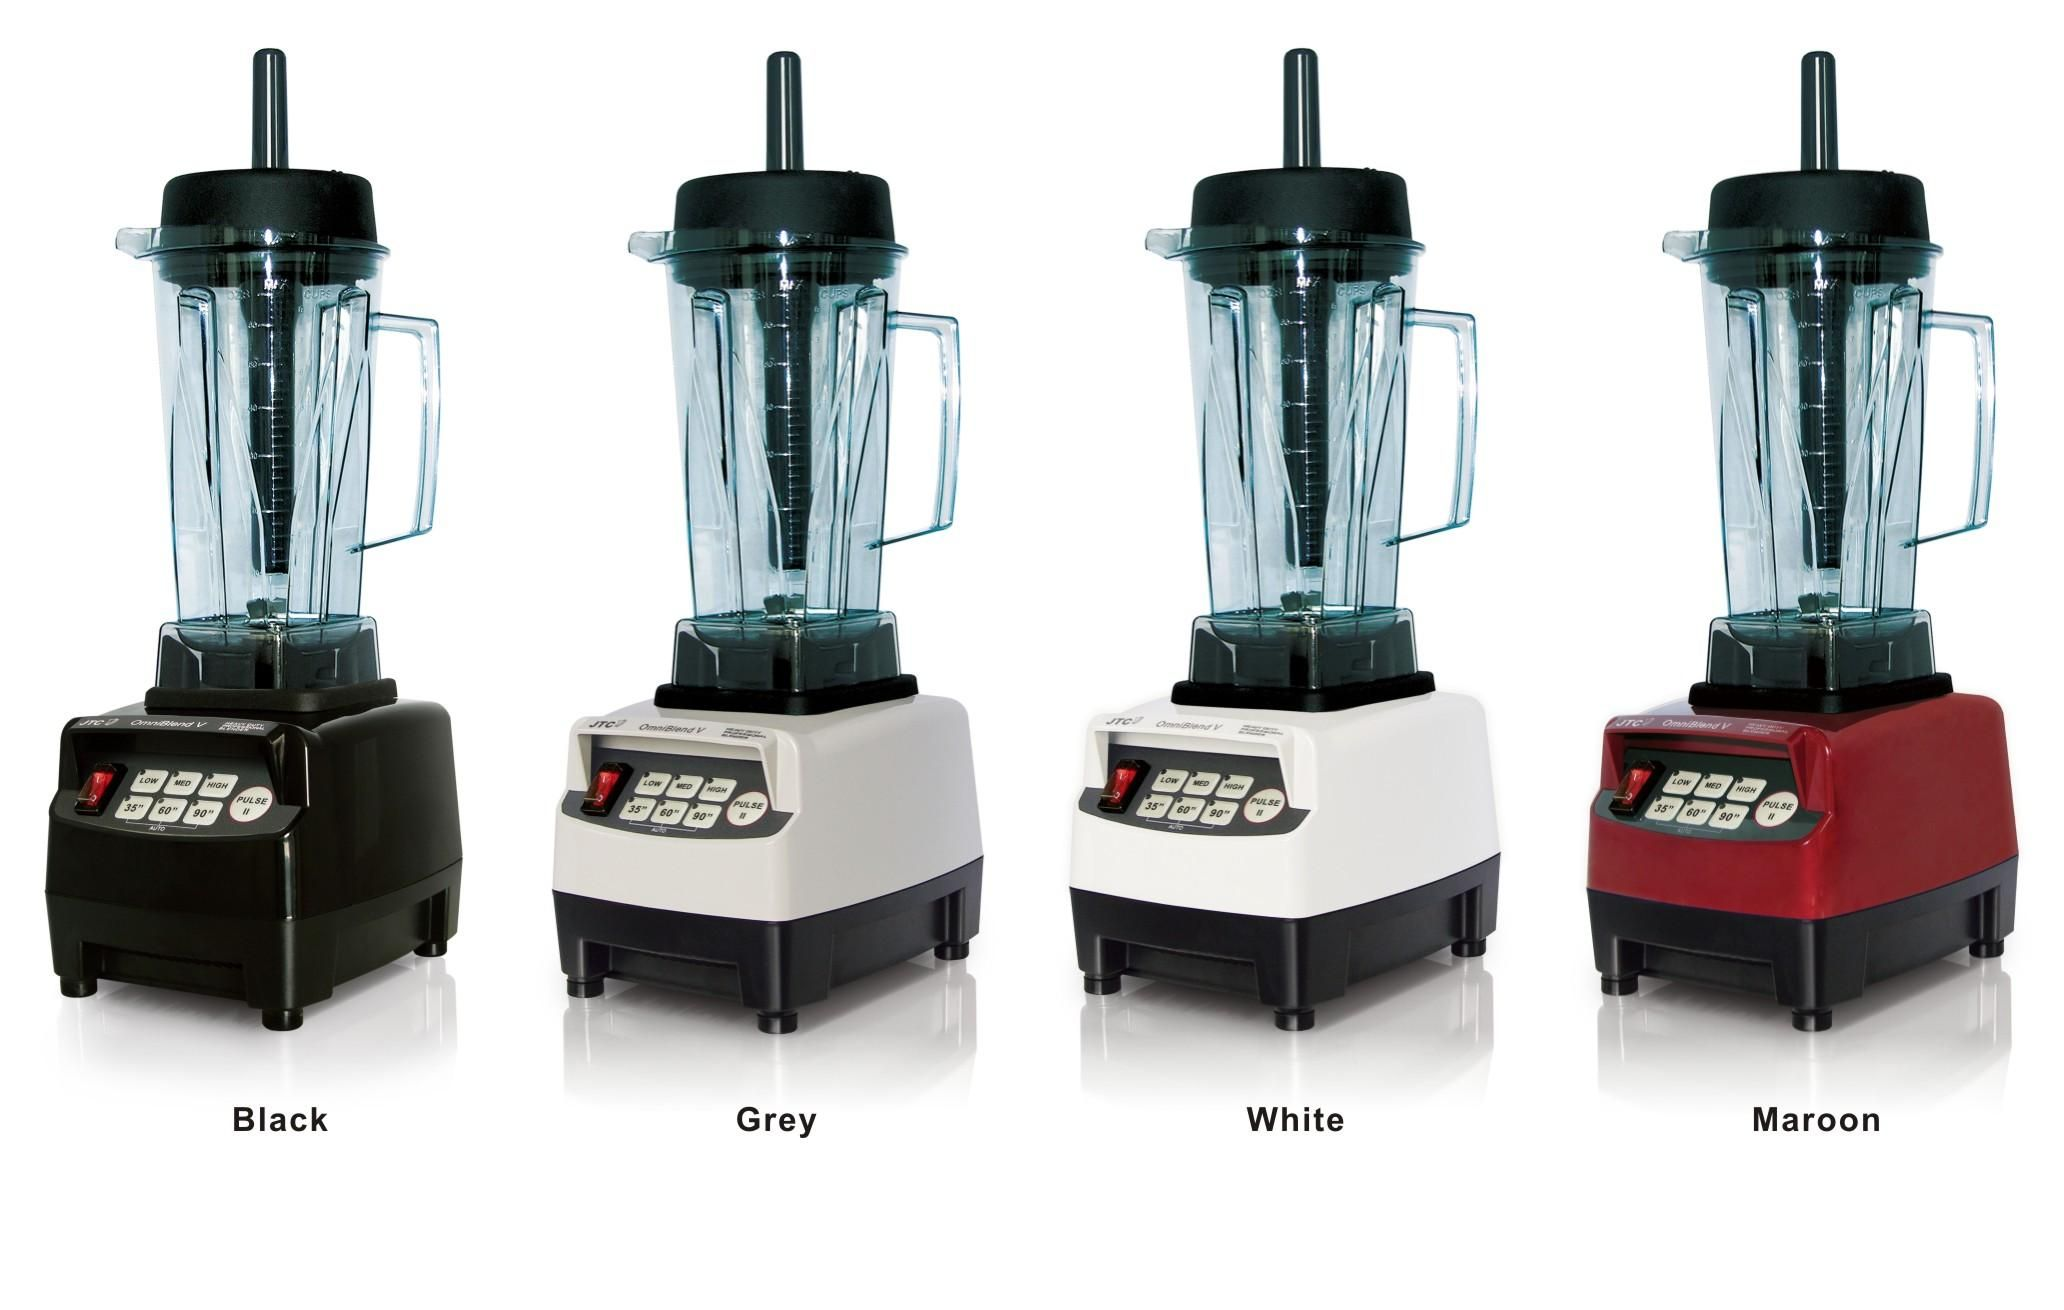 JTC Heavy duty commercial blender with PC jar, Model:TM-800, Black, FREE SHIPPING, 100% GUARANTEED NO. 1 QUALITY IN THE WORLD.